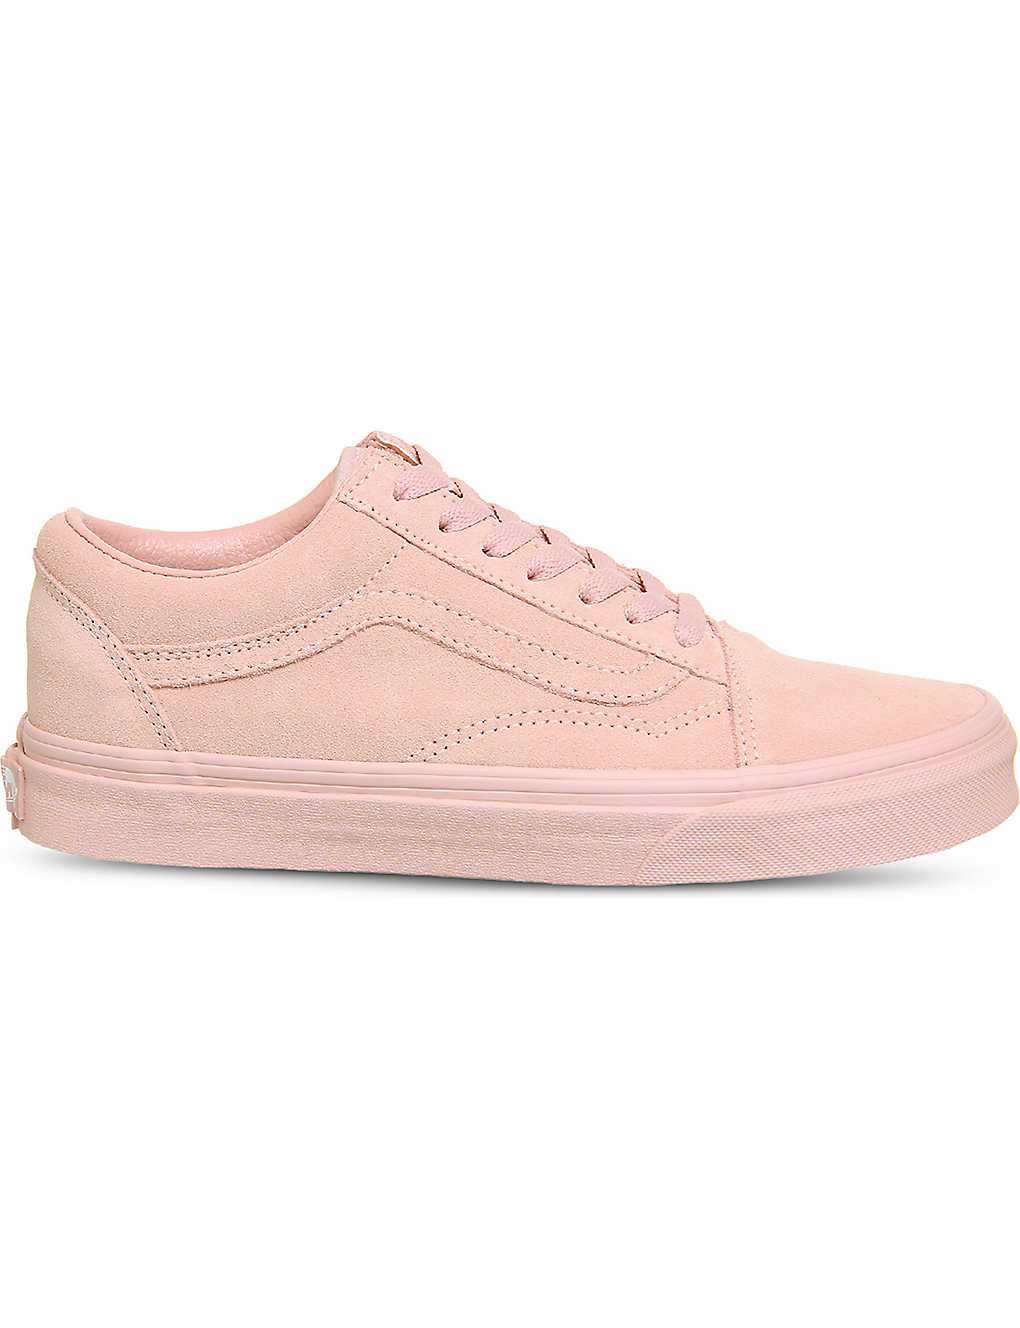 a5c02f0134bc VANS - Old Skool low-top suede trainers